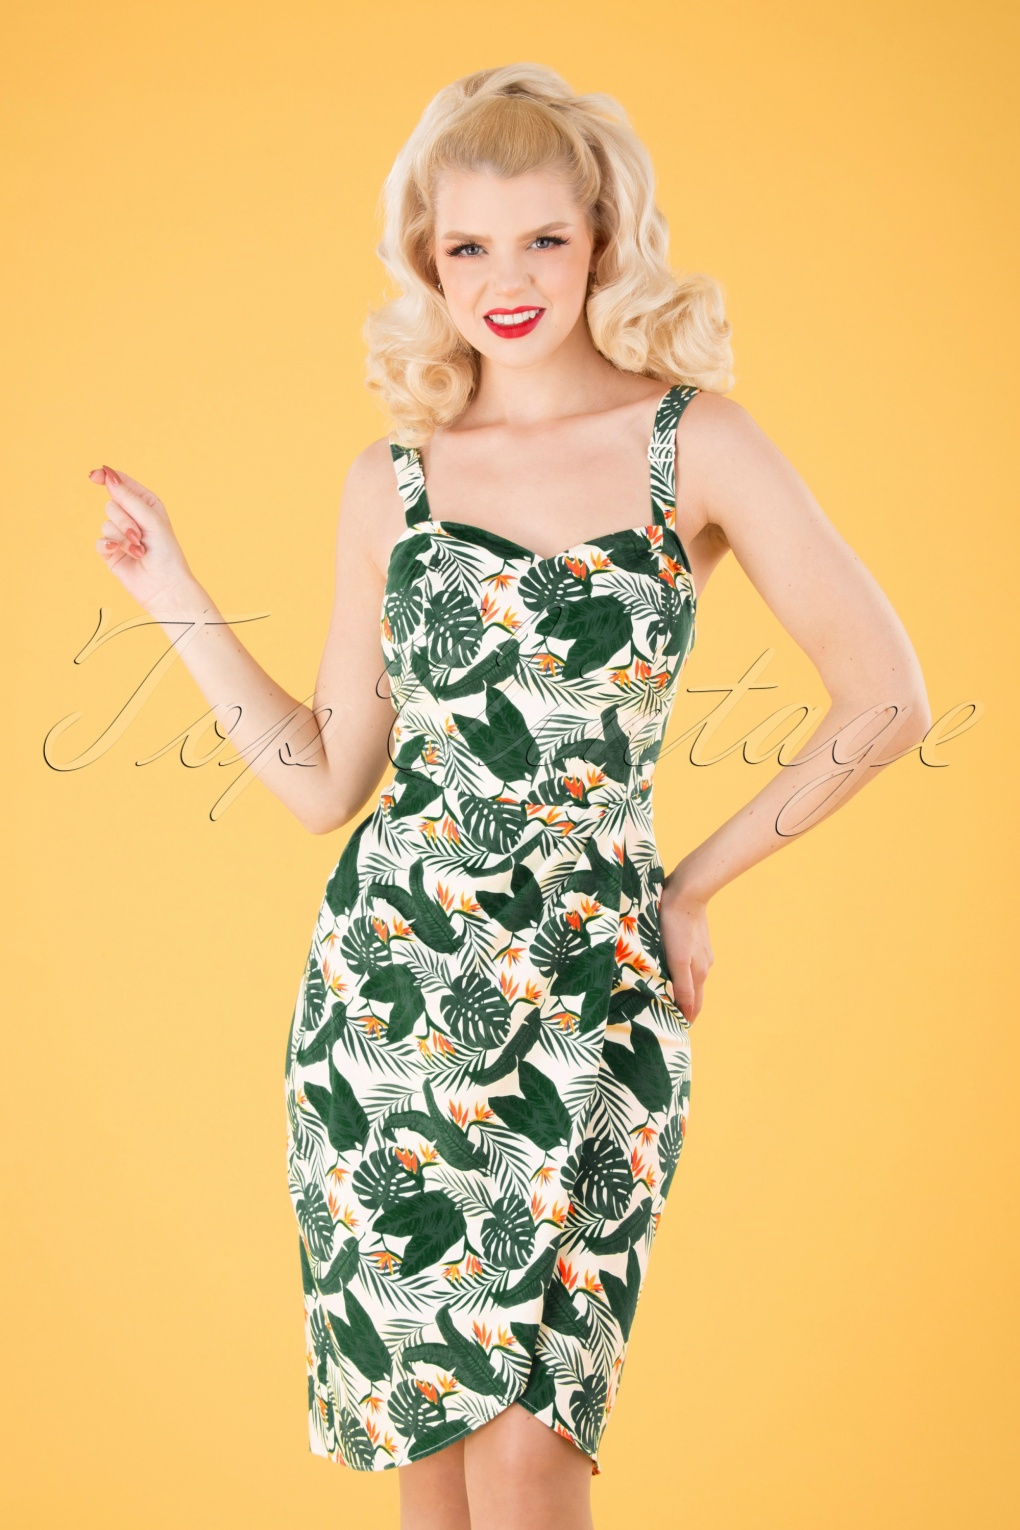 New Fifties Dresses | 50s Inspired Dresses 50s Mahina Bird Of Paradise Sarong Dress in White £43.36 AT vintagedancer.com